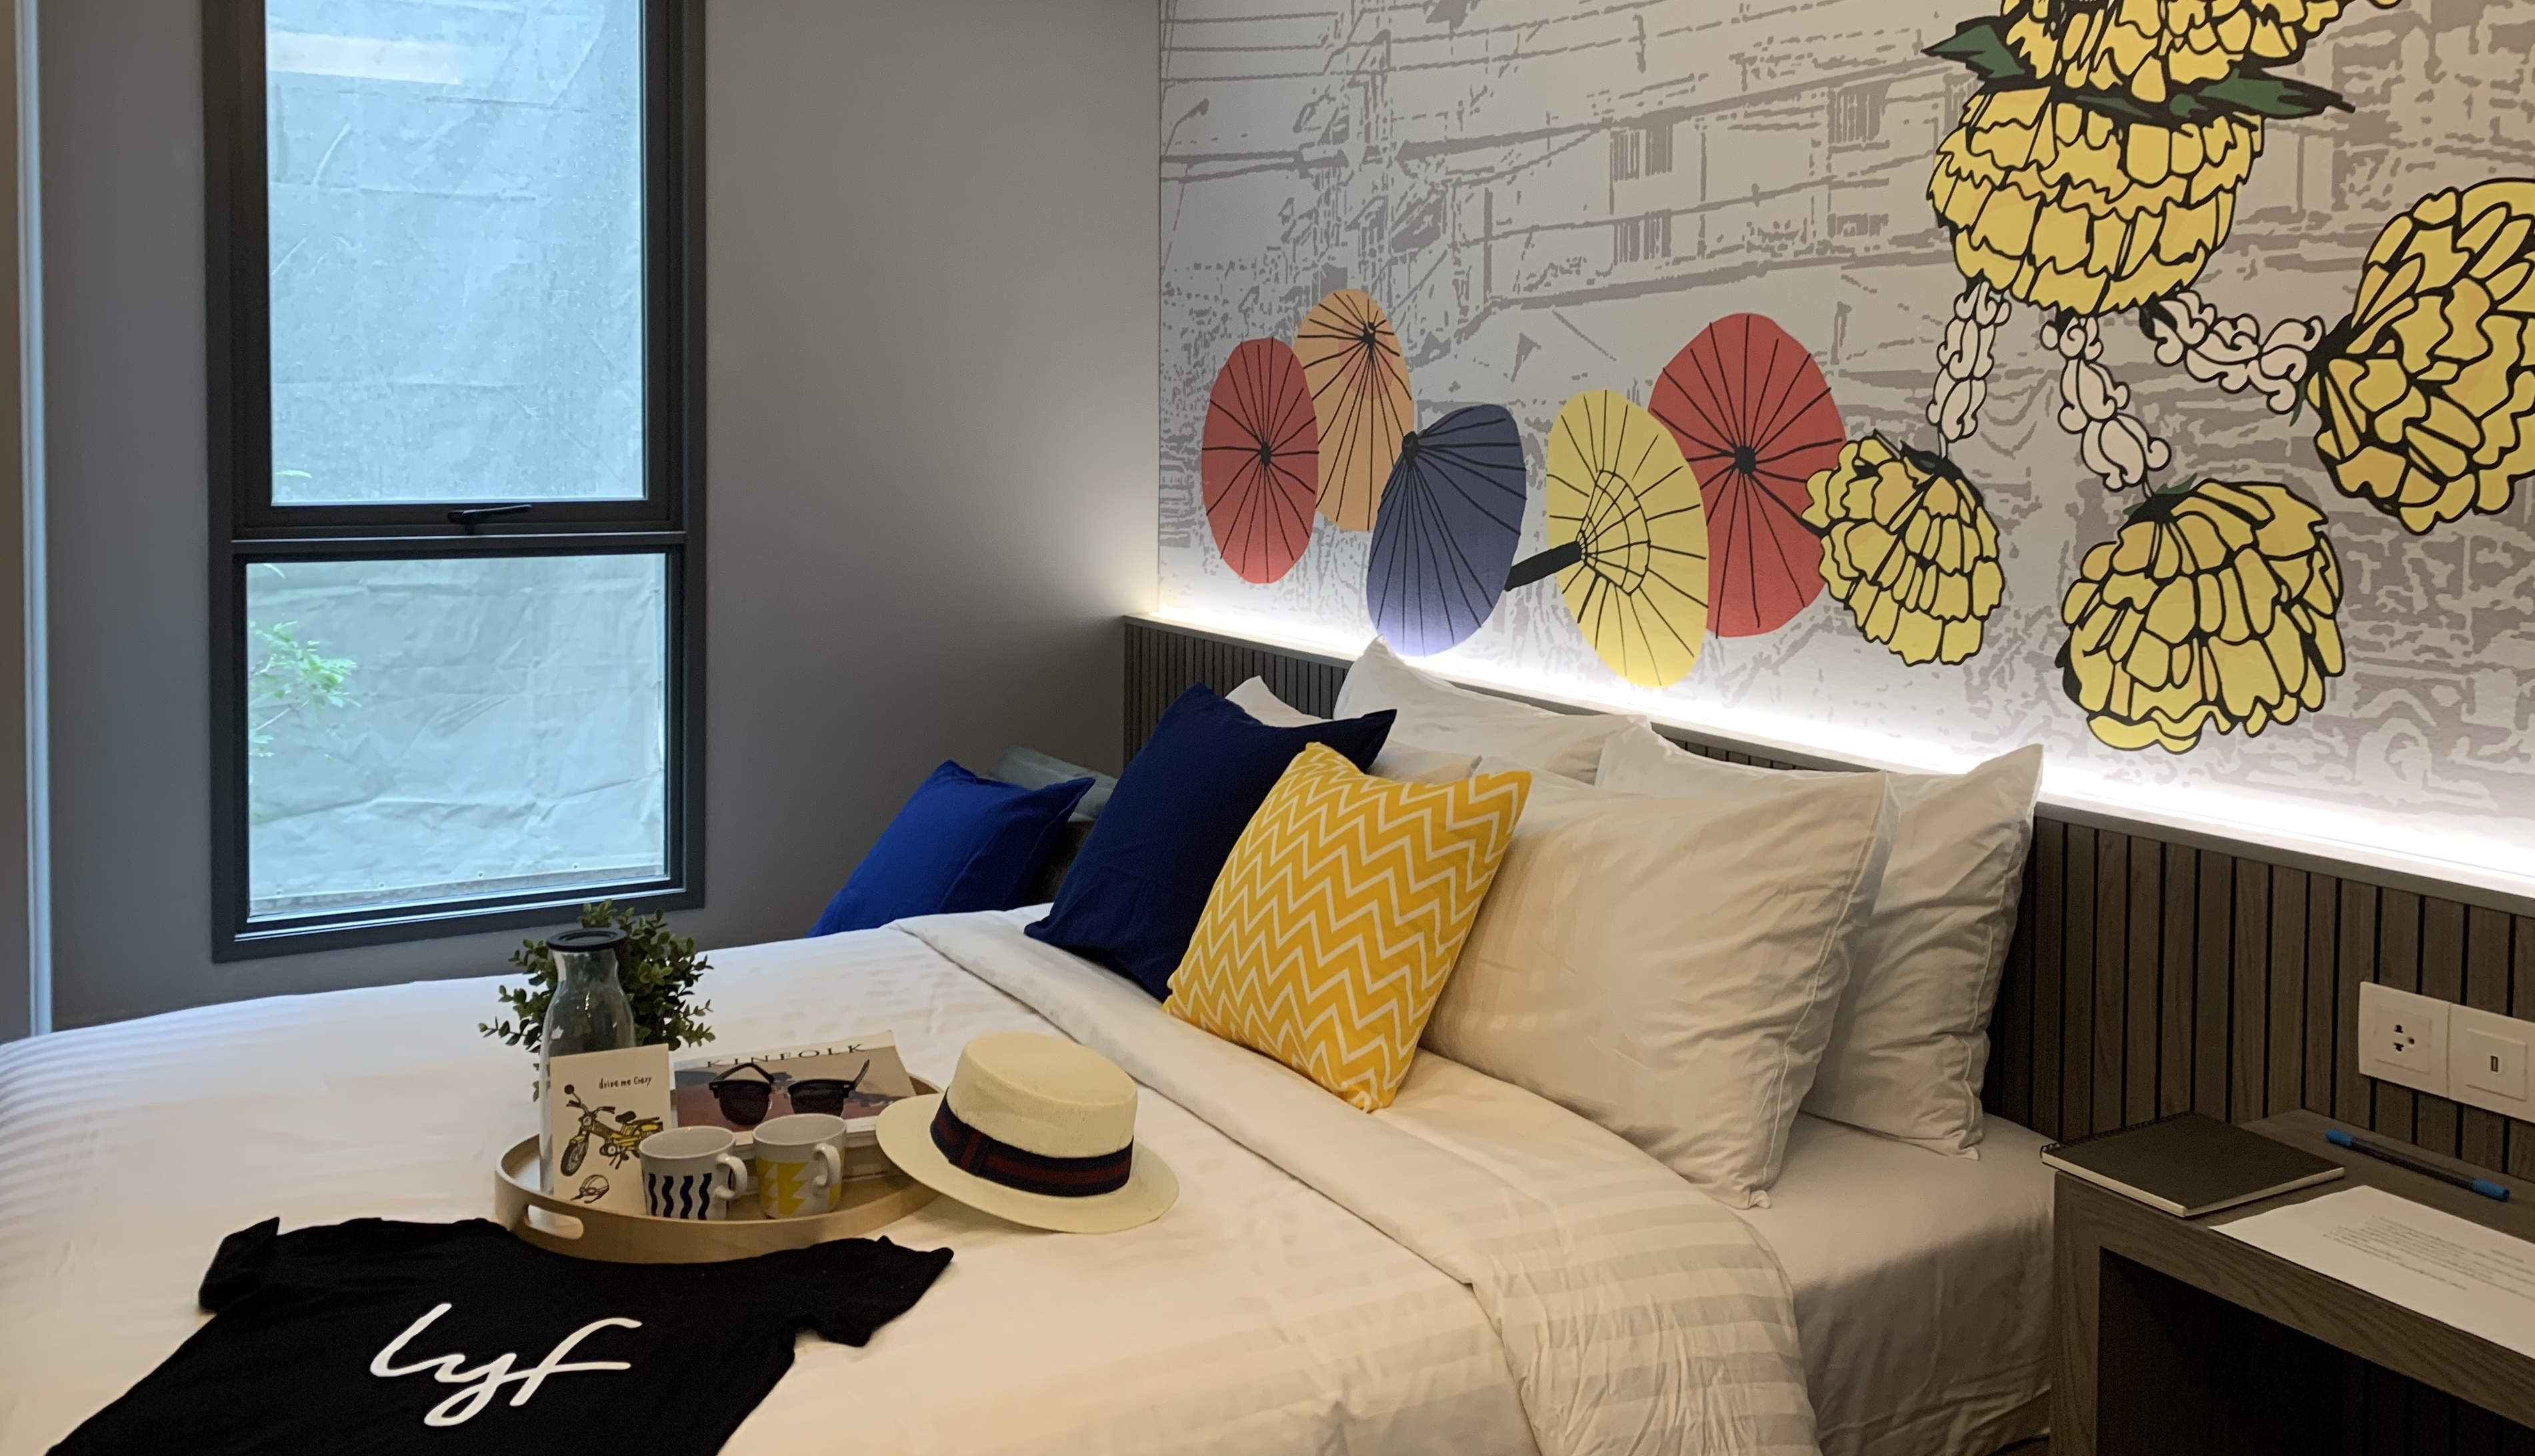 One of a Kind (Studio) apartment bed at lyf Sukhumvit 8 Bangkok